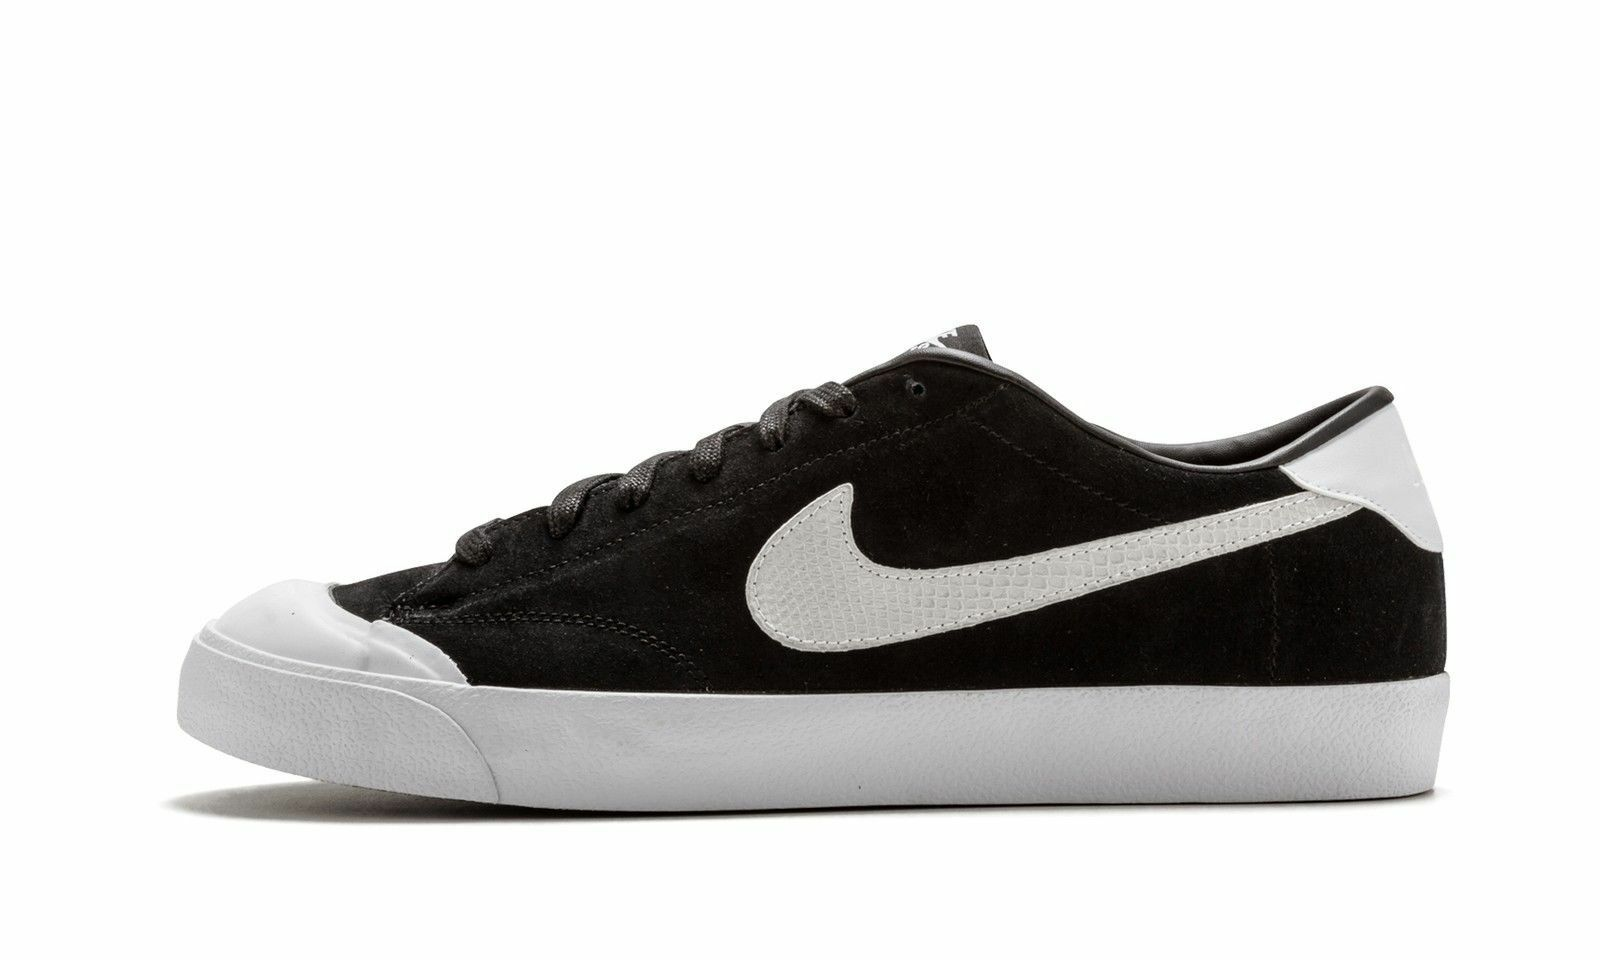 MENS NIKE ZOOM ALL COURT CK QS SHOES SIZE 11.5 black white 811252 001